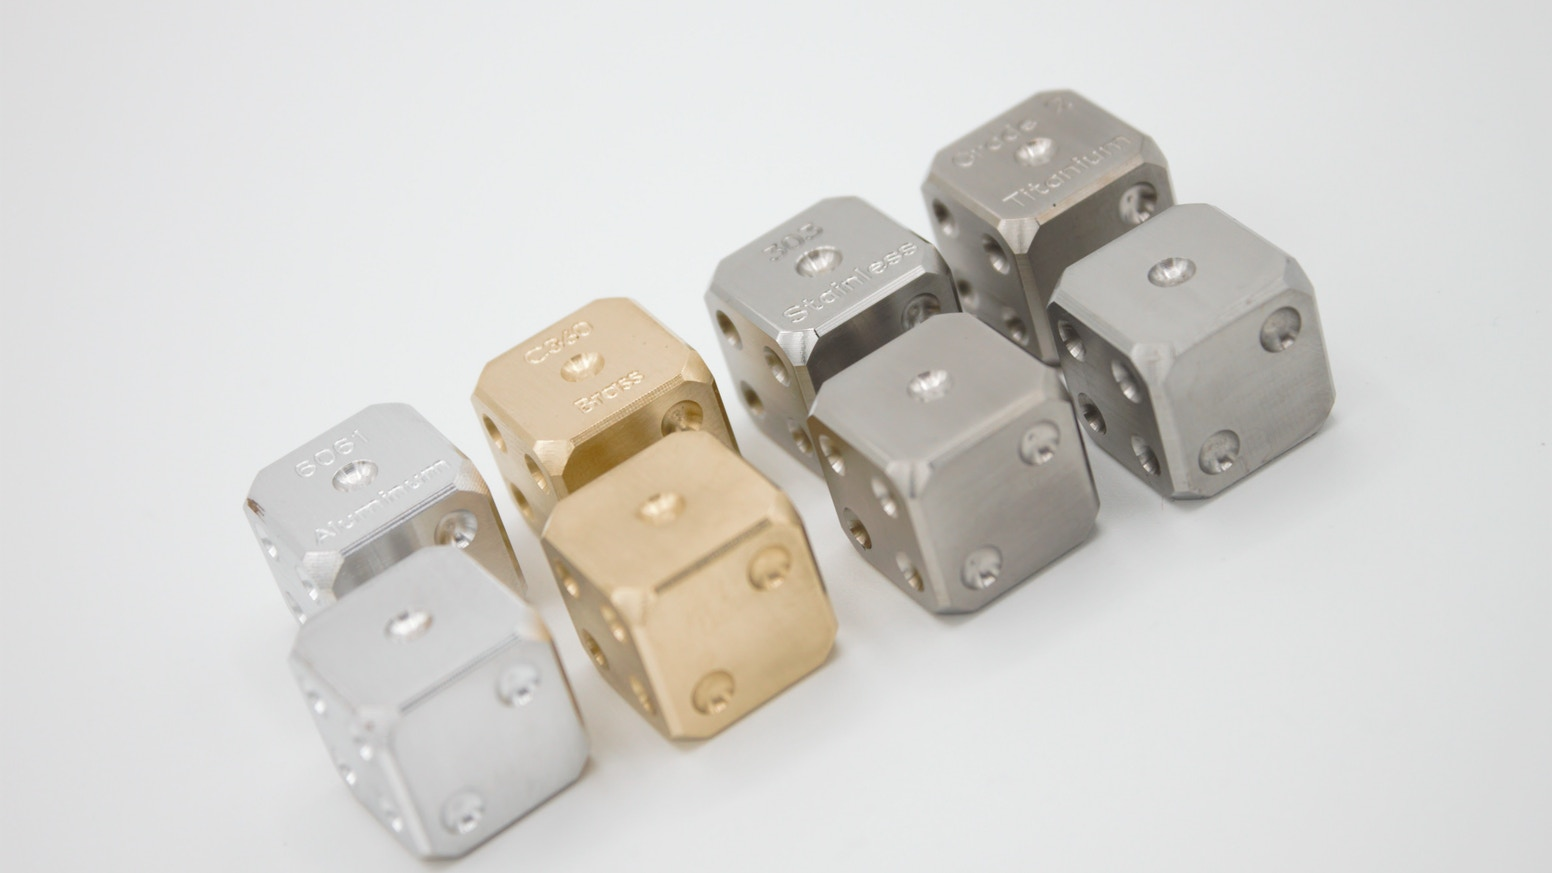 Dice made from engineering alloys: Now offering titanium and stainless steel!